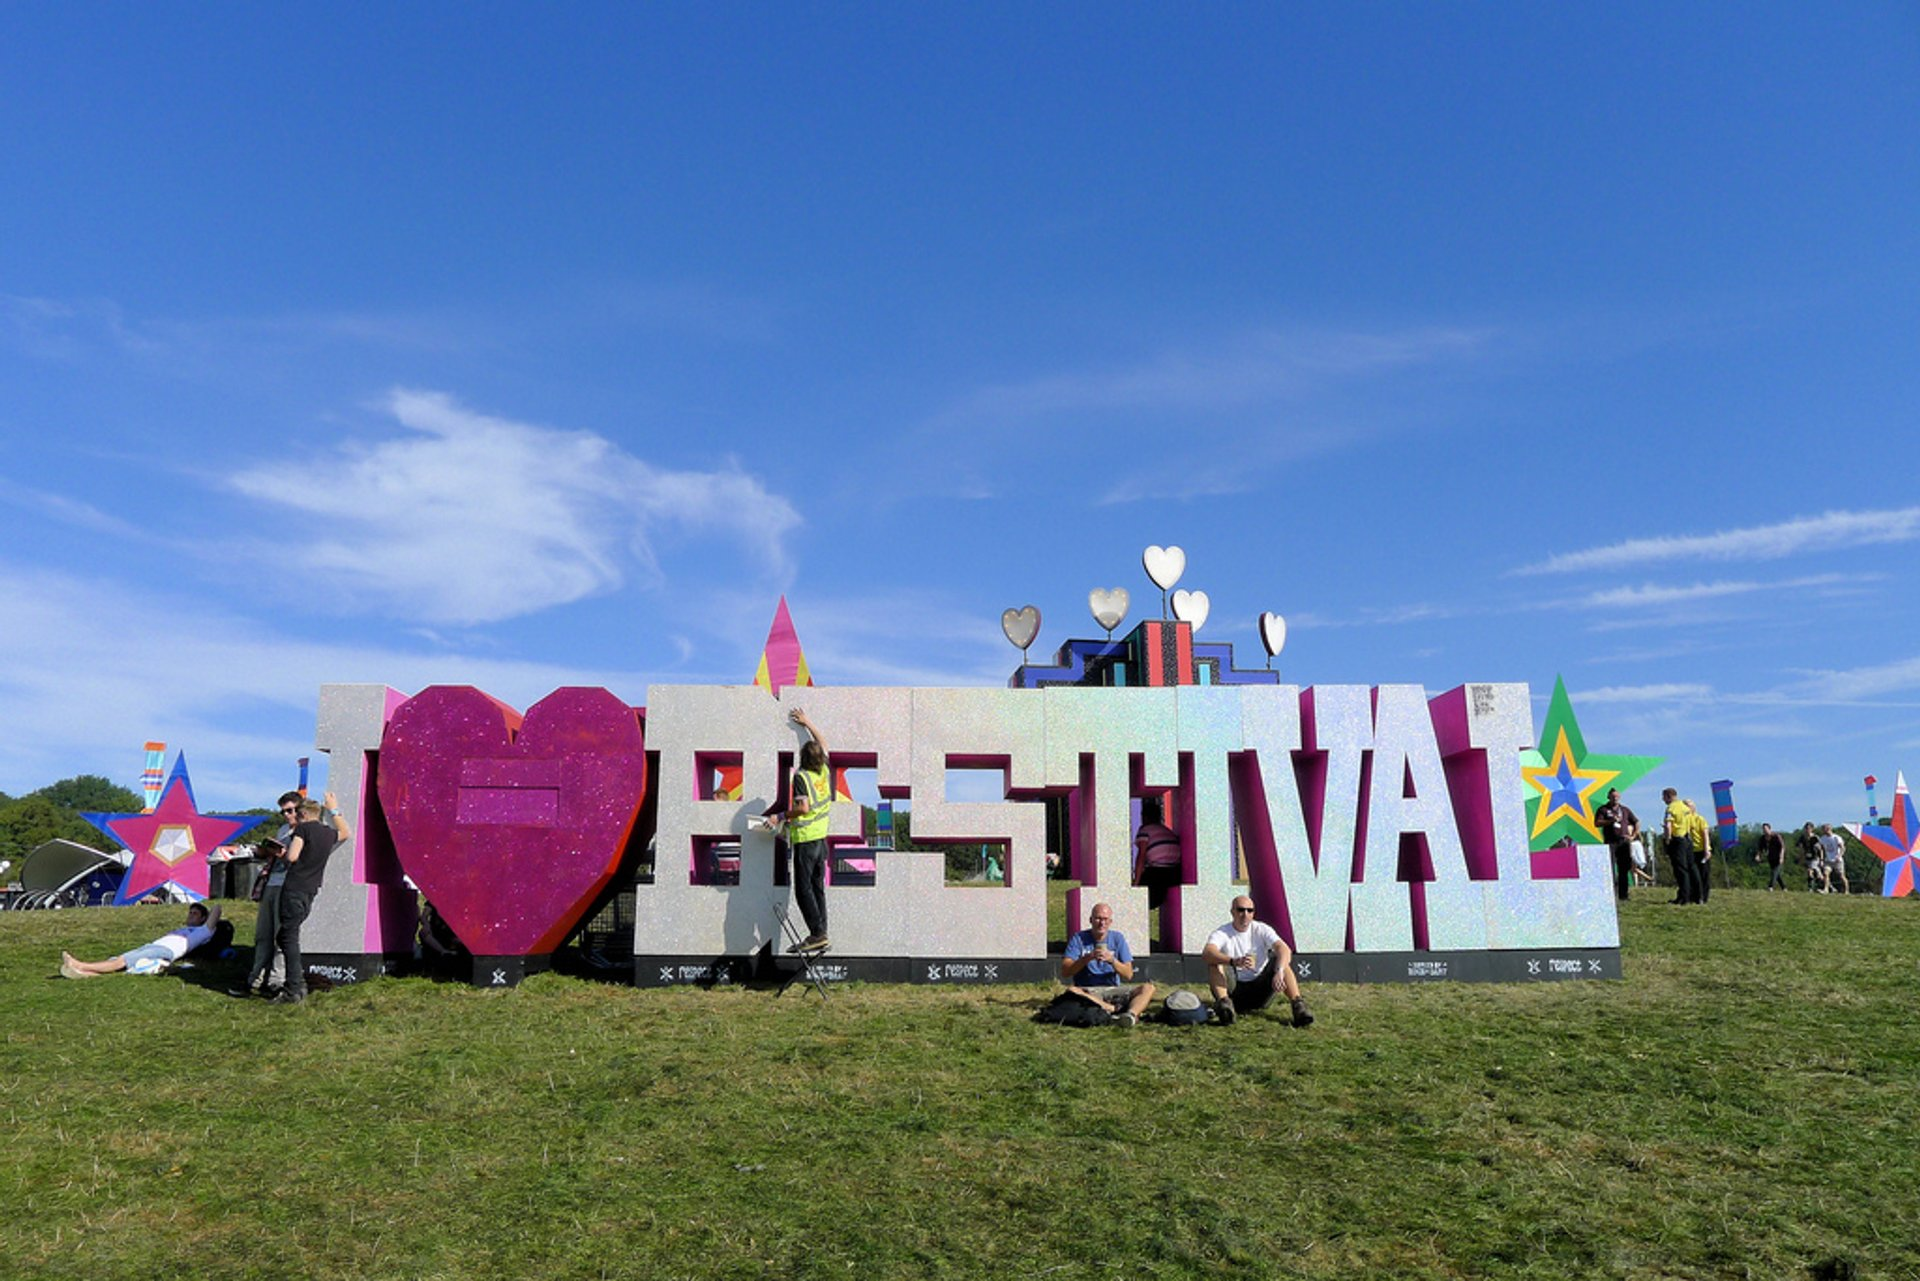 Best time for Bestival Toronto in Toronto